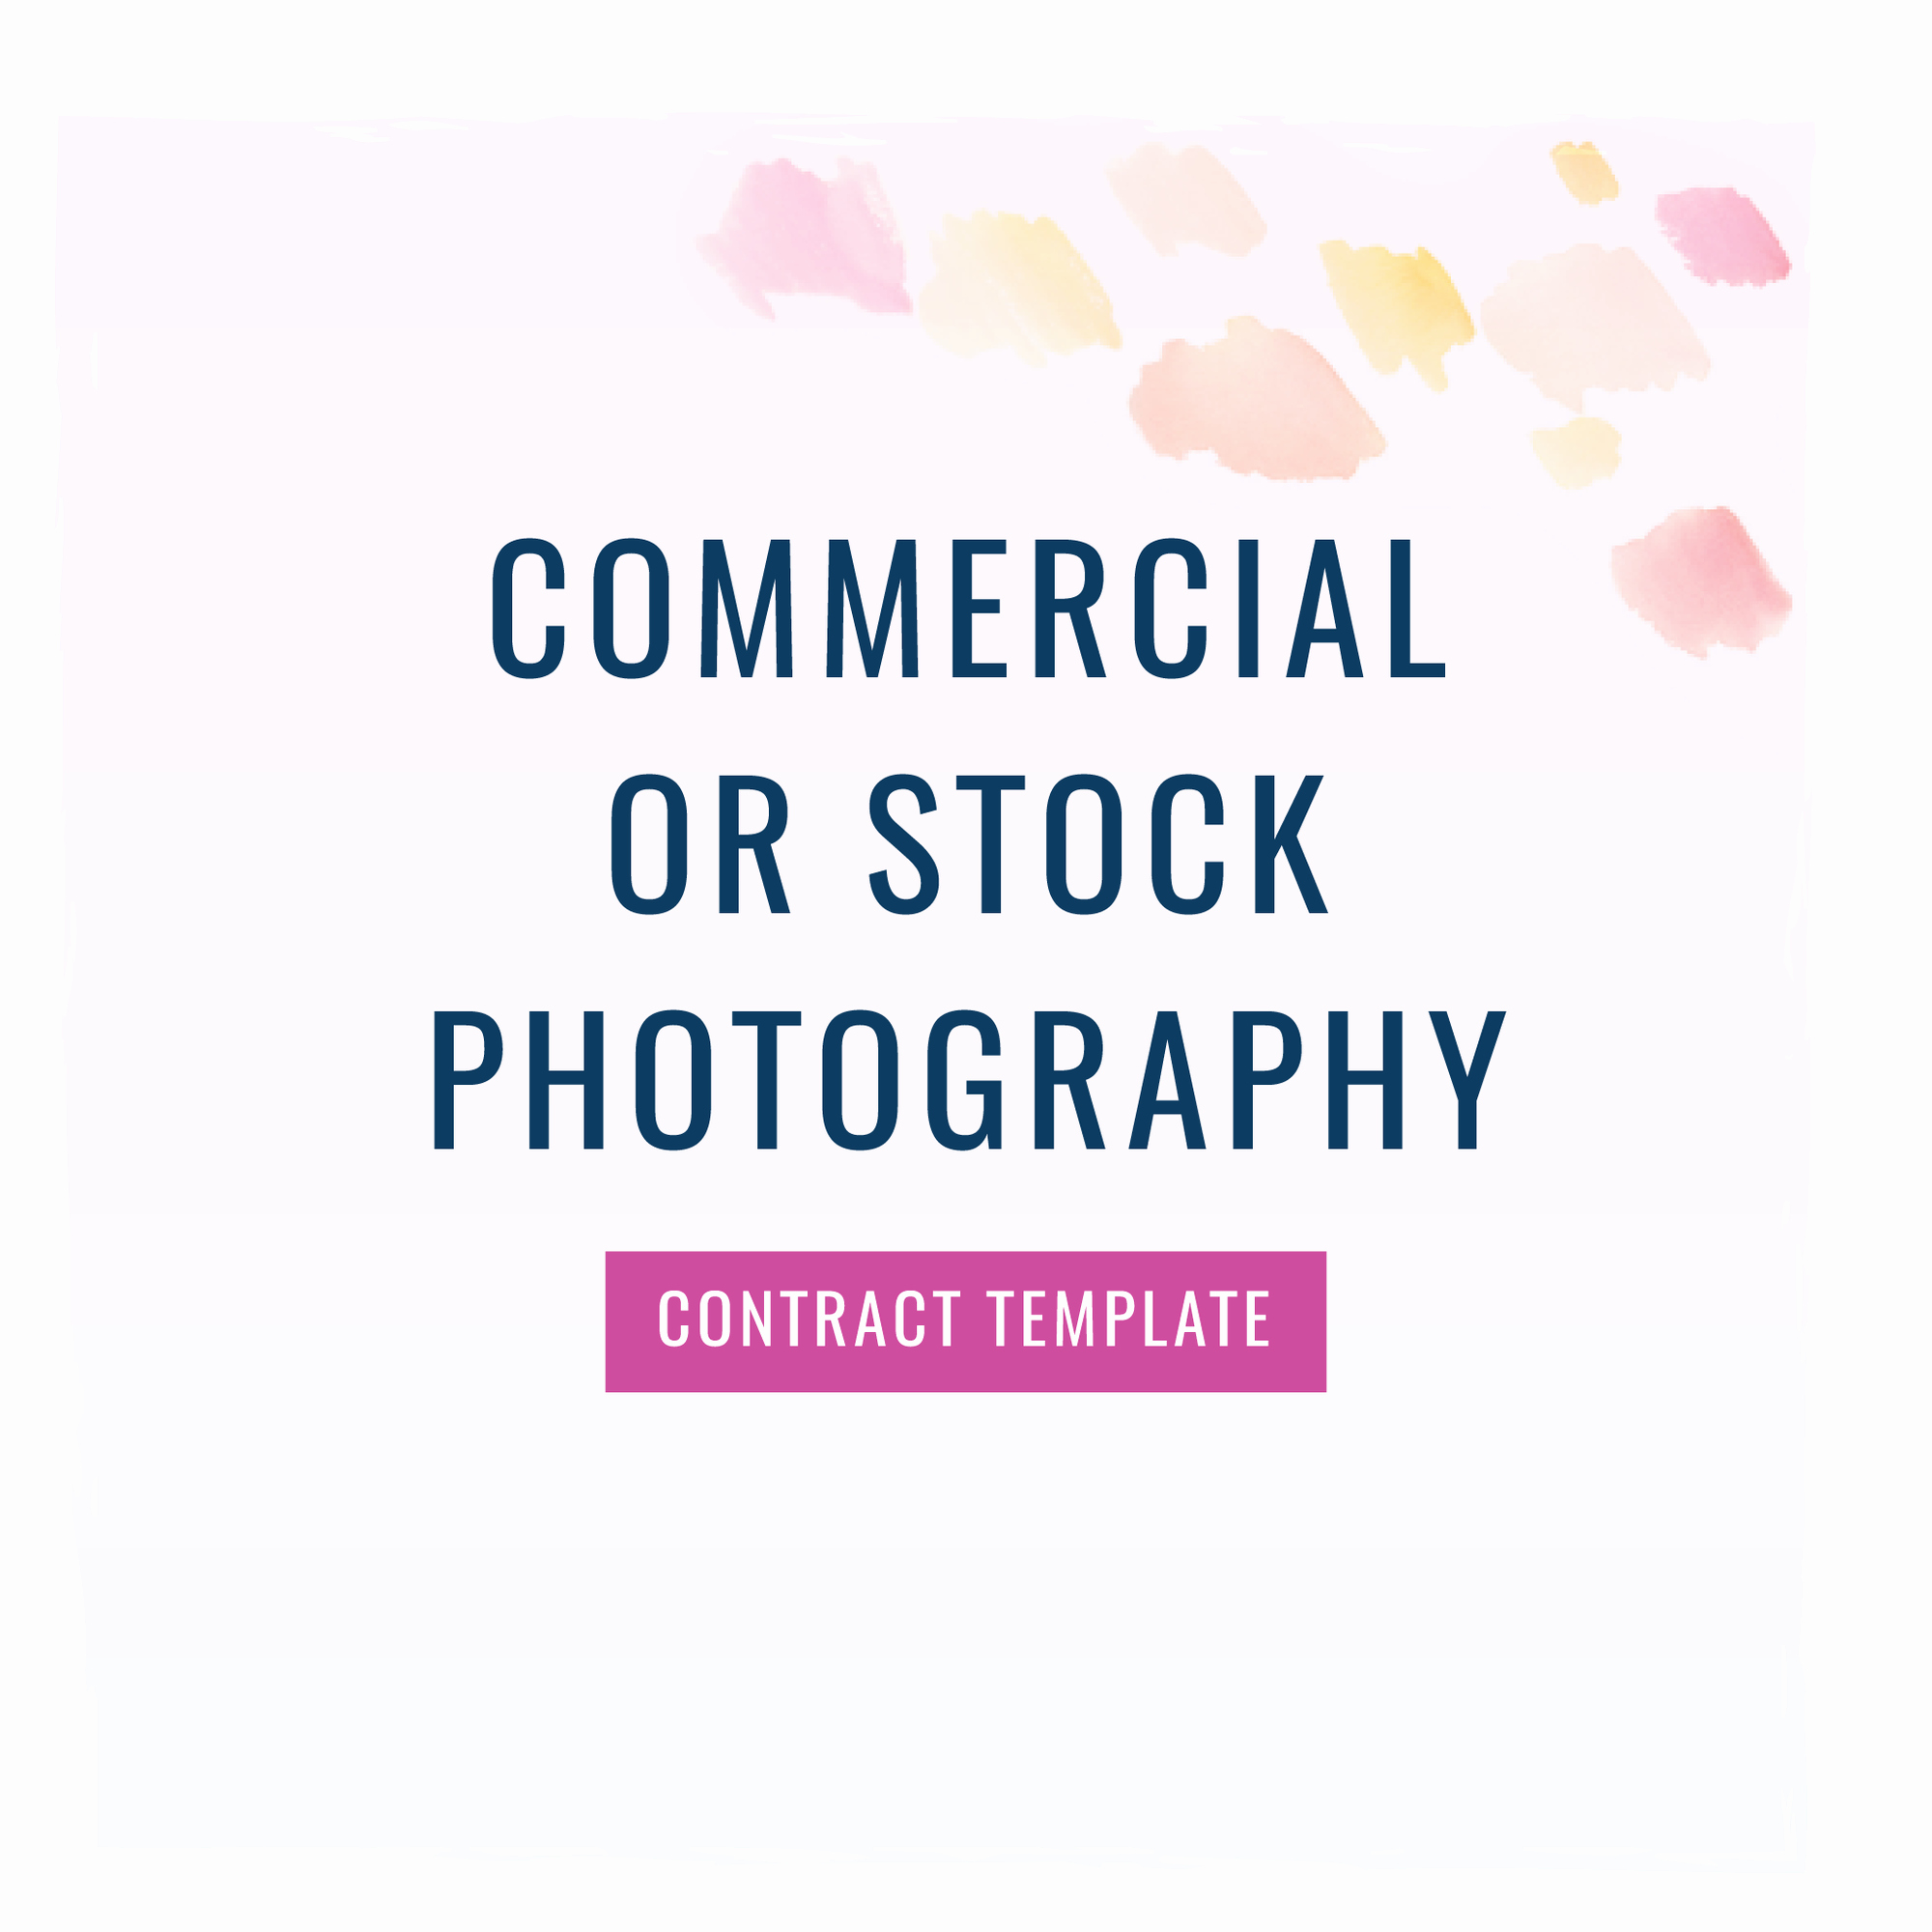 Commercial Photography Contract Template Unique Mercial or Stock Graphy Contract Template the Contract Shop